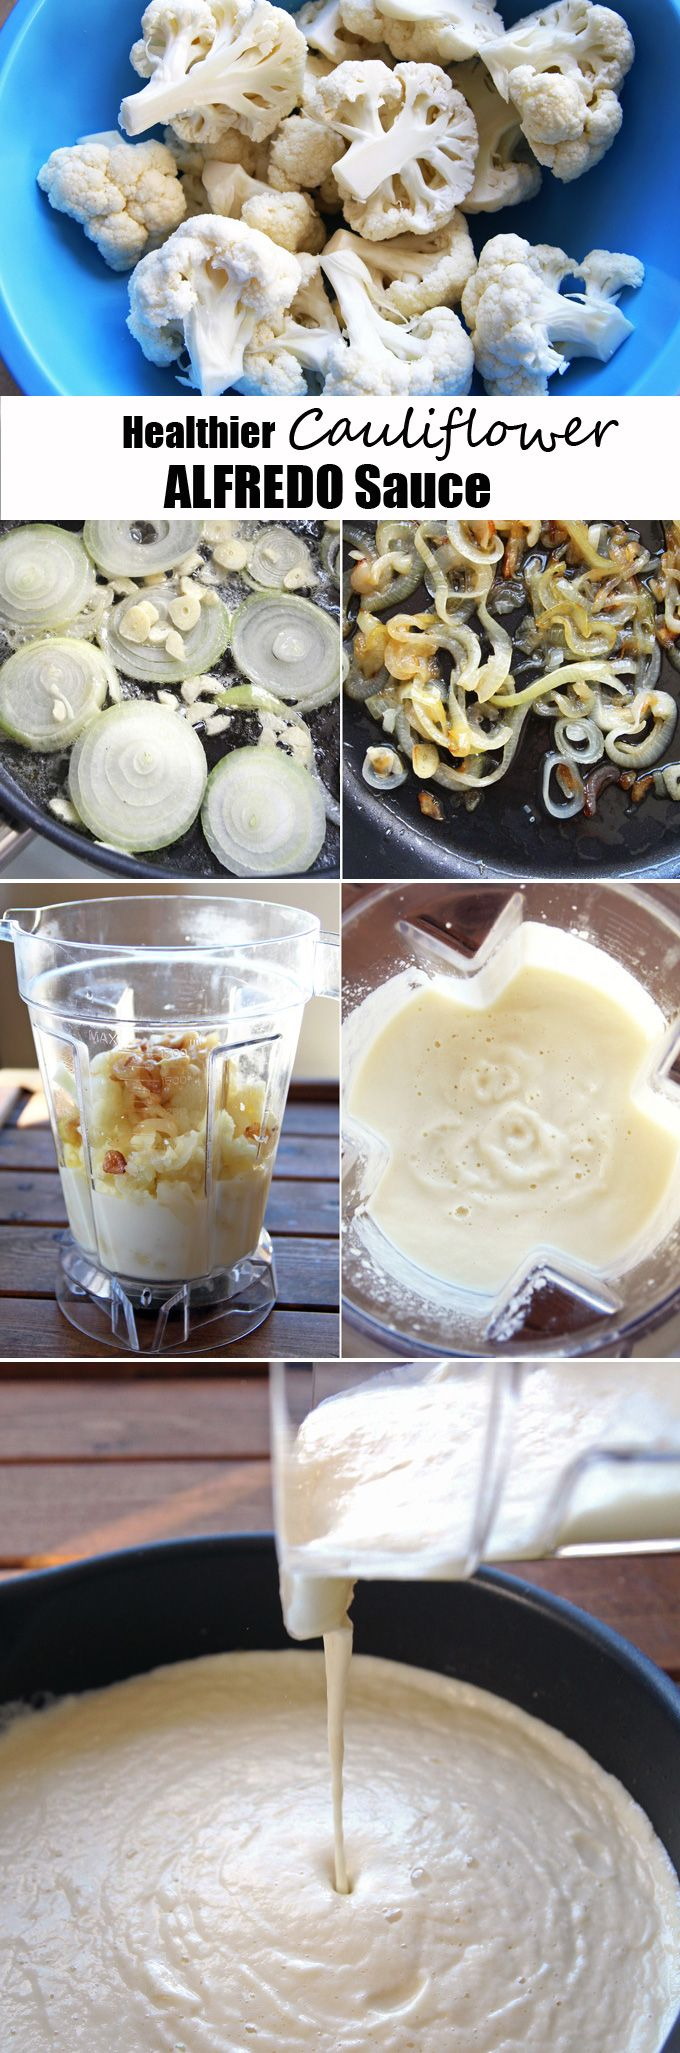 Healthy Cauliflower Alfredo Sauce 1 medium head of cauliflower (~ 1 lb/450 g) 1 large yellow onion 2 cloves garlic 1 tablespoon butter (or coconut oil) 5 cups (1.2 L) vegetable or chicken broth ¾ cup (175 ml) milk (or almond milk) ½ teaspoon salt